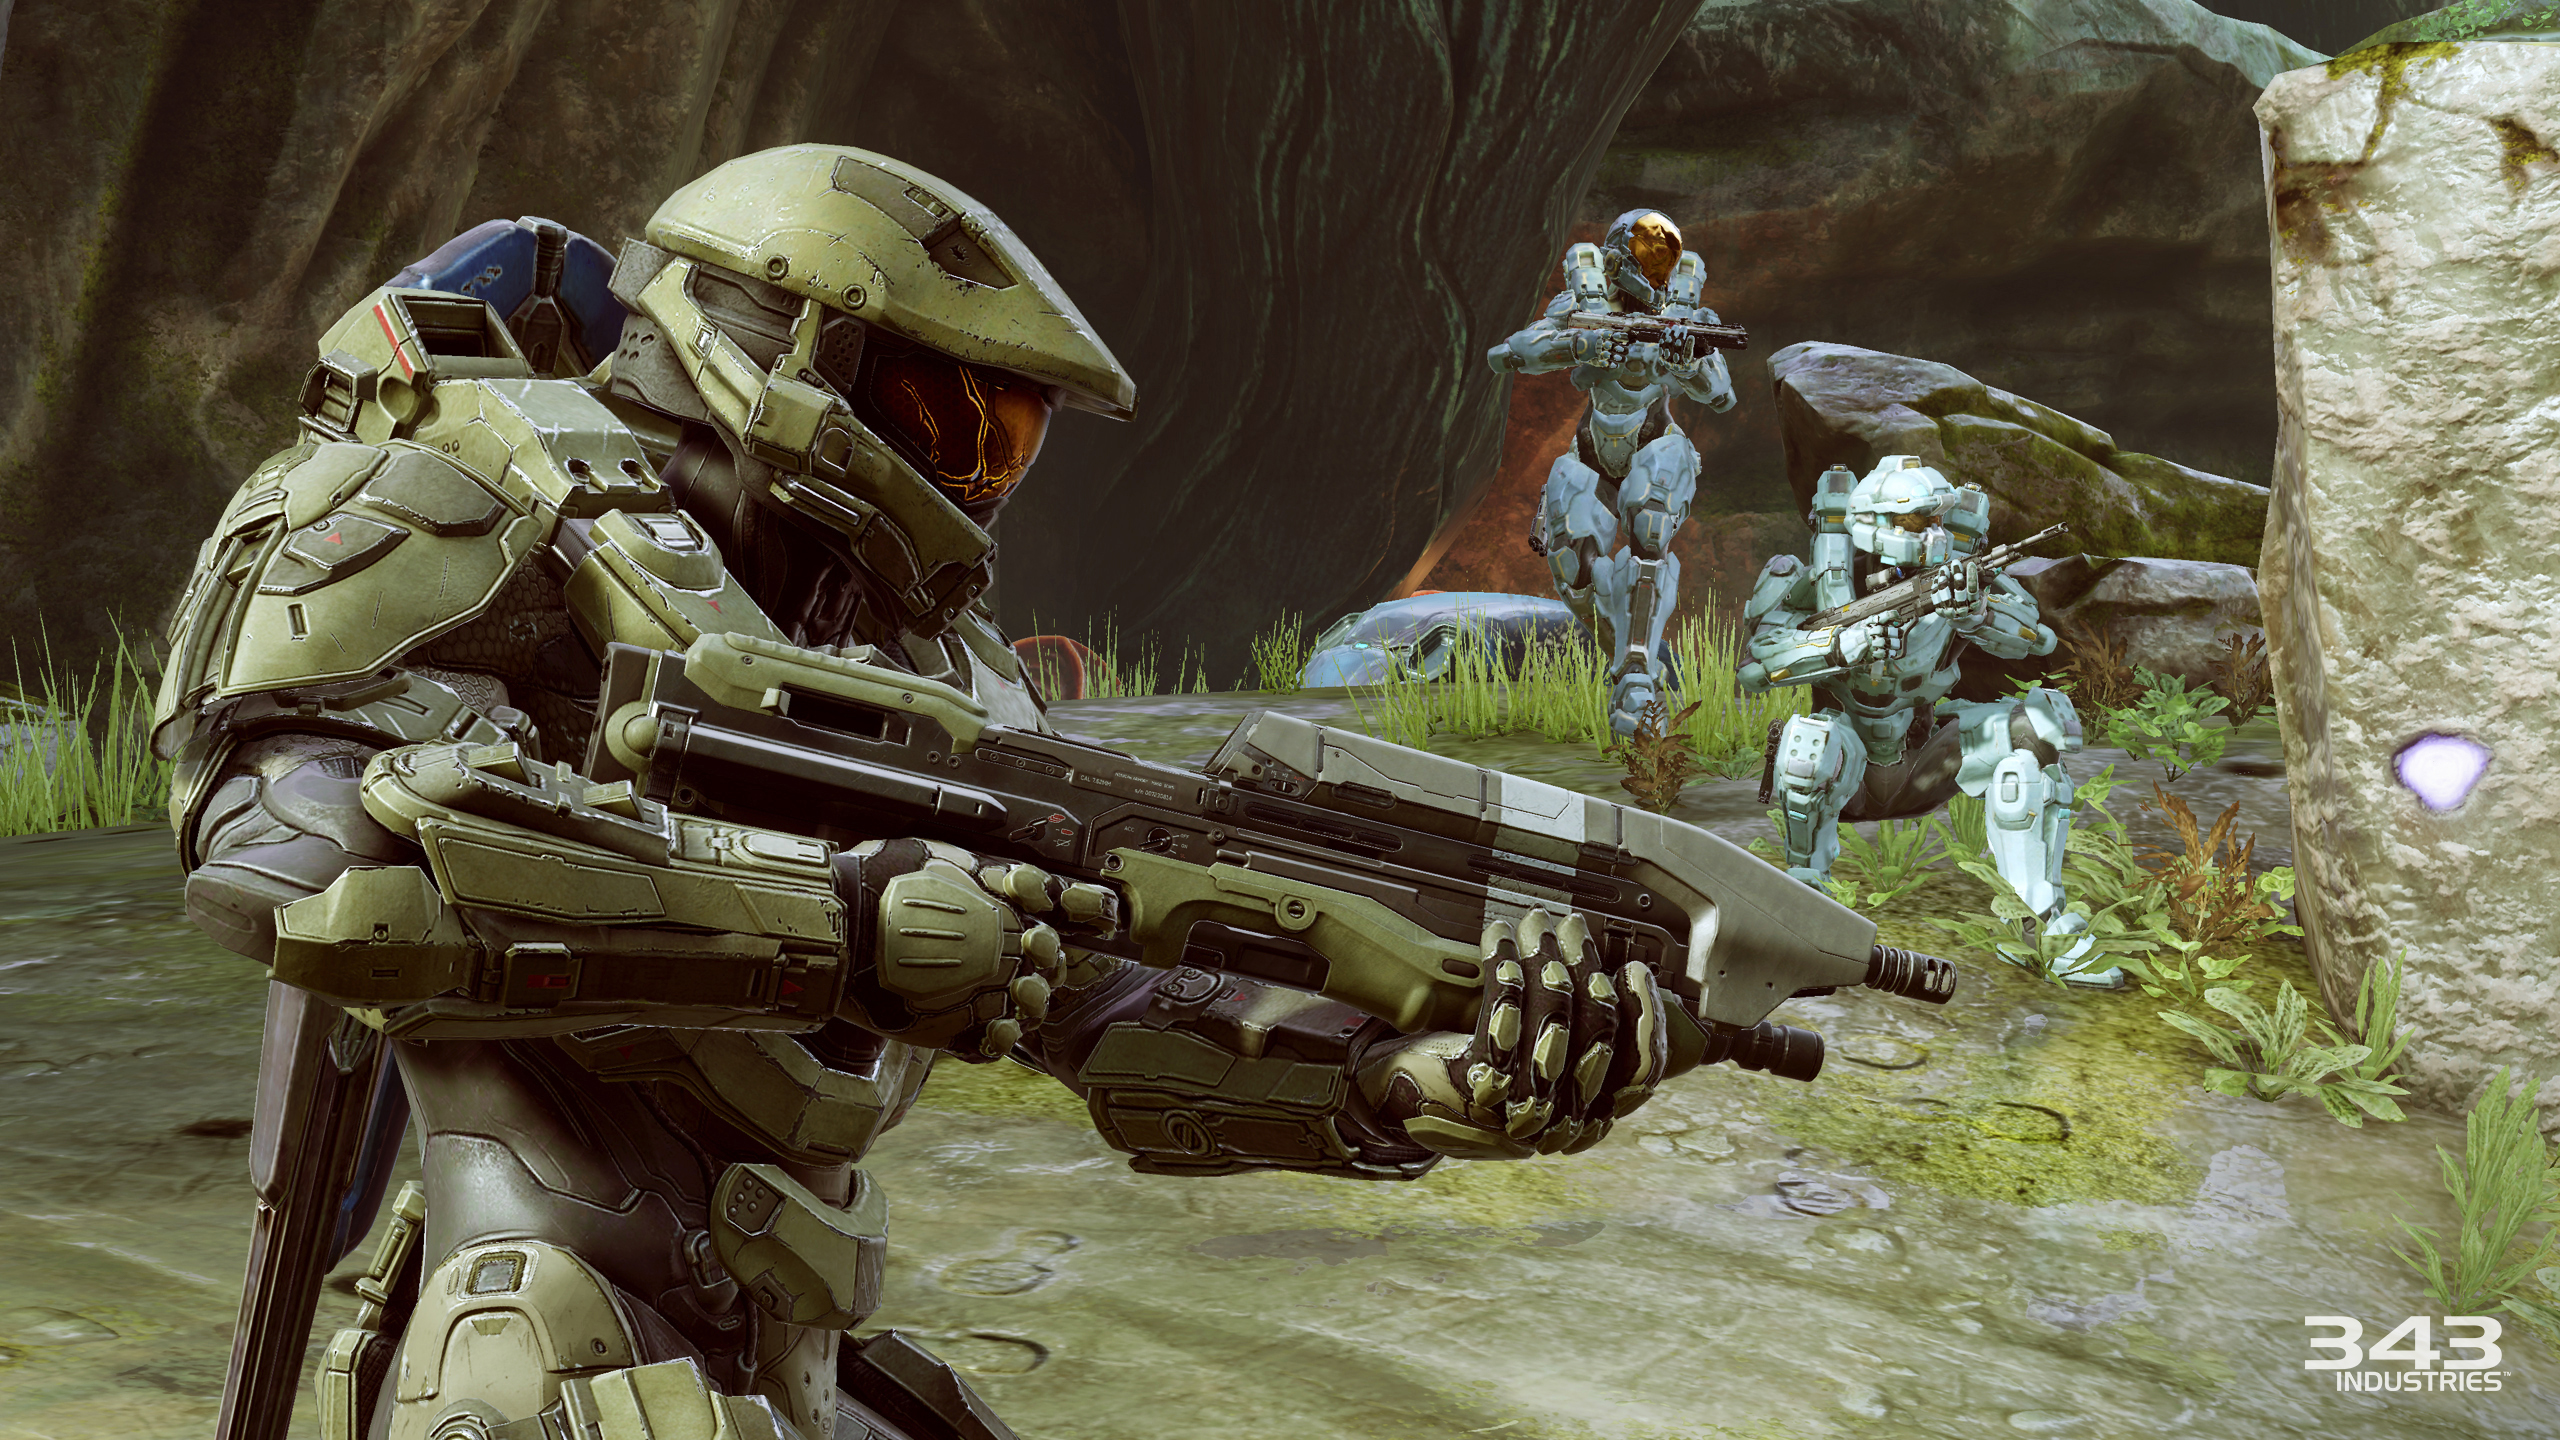 Better environments, bigger cast help make 'Halo 5' better